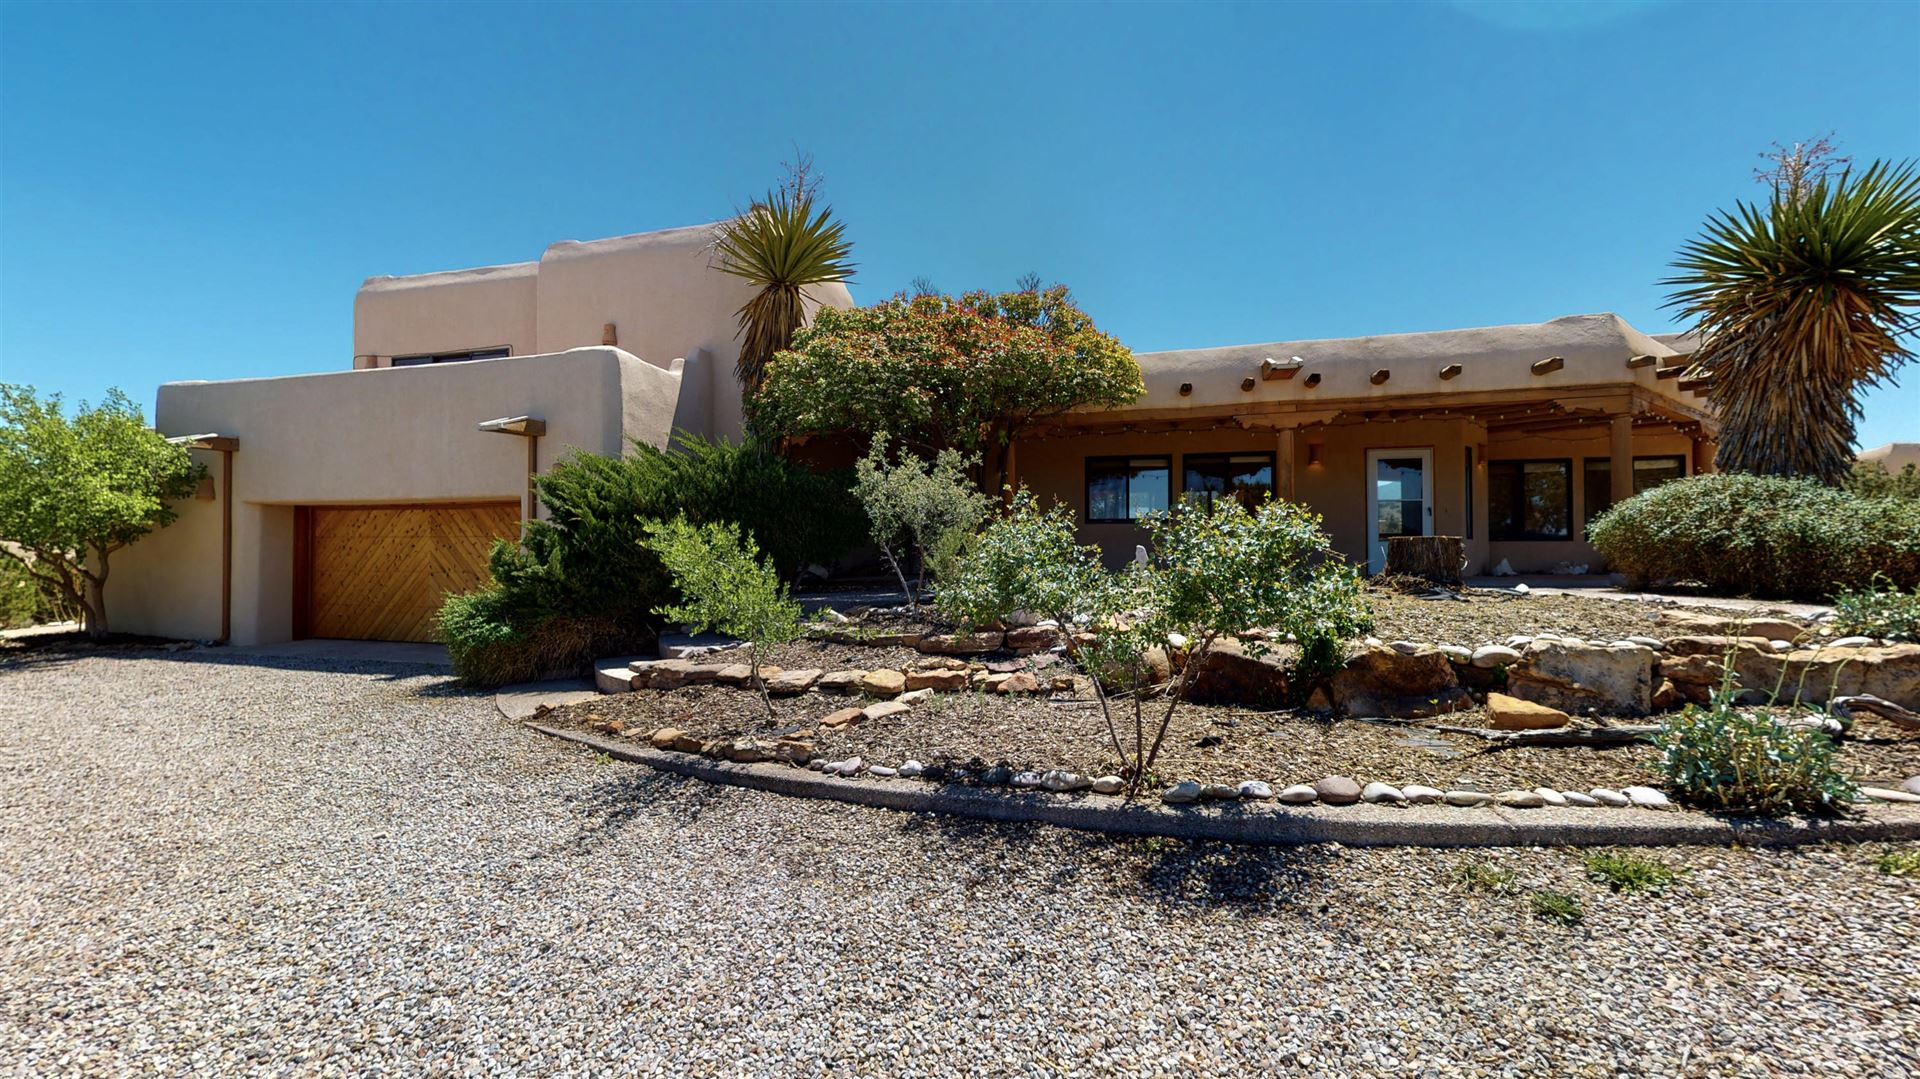 Photo of 6 CALLE COBRE, Placitas, NM 87043 (MLS # 969169)